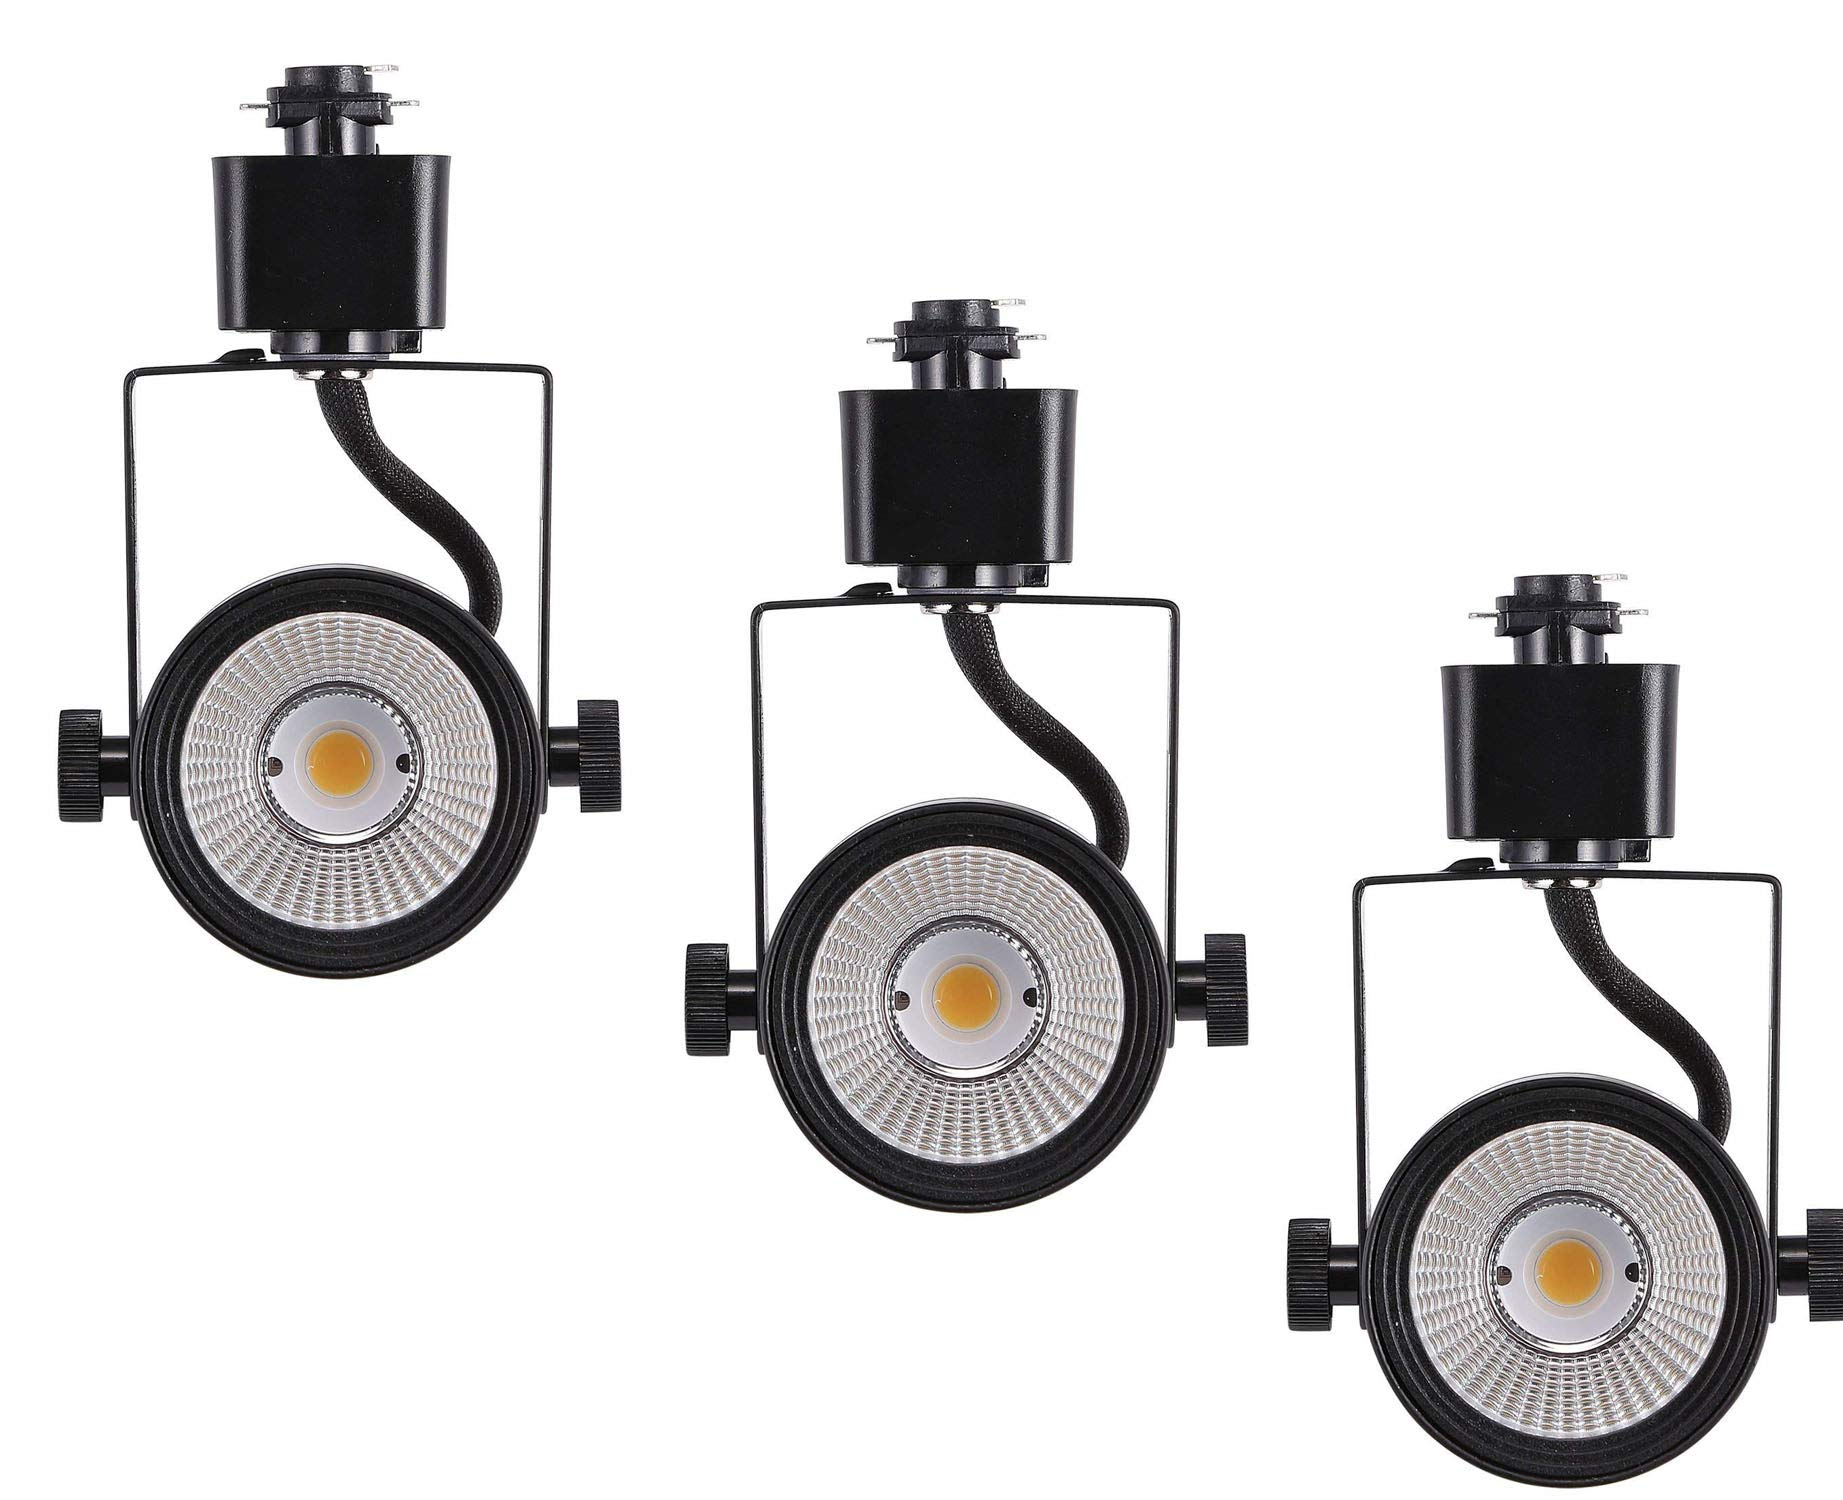 Cloudy Bay LED Track Light Head,CRI 90+ Warm White 3000K Dimmable,Adjustable Tilt Angle Track Lighting Fixture,8W 40° Angle for Accent Retail,Black Finish Halo Type - 3 Pack